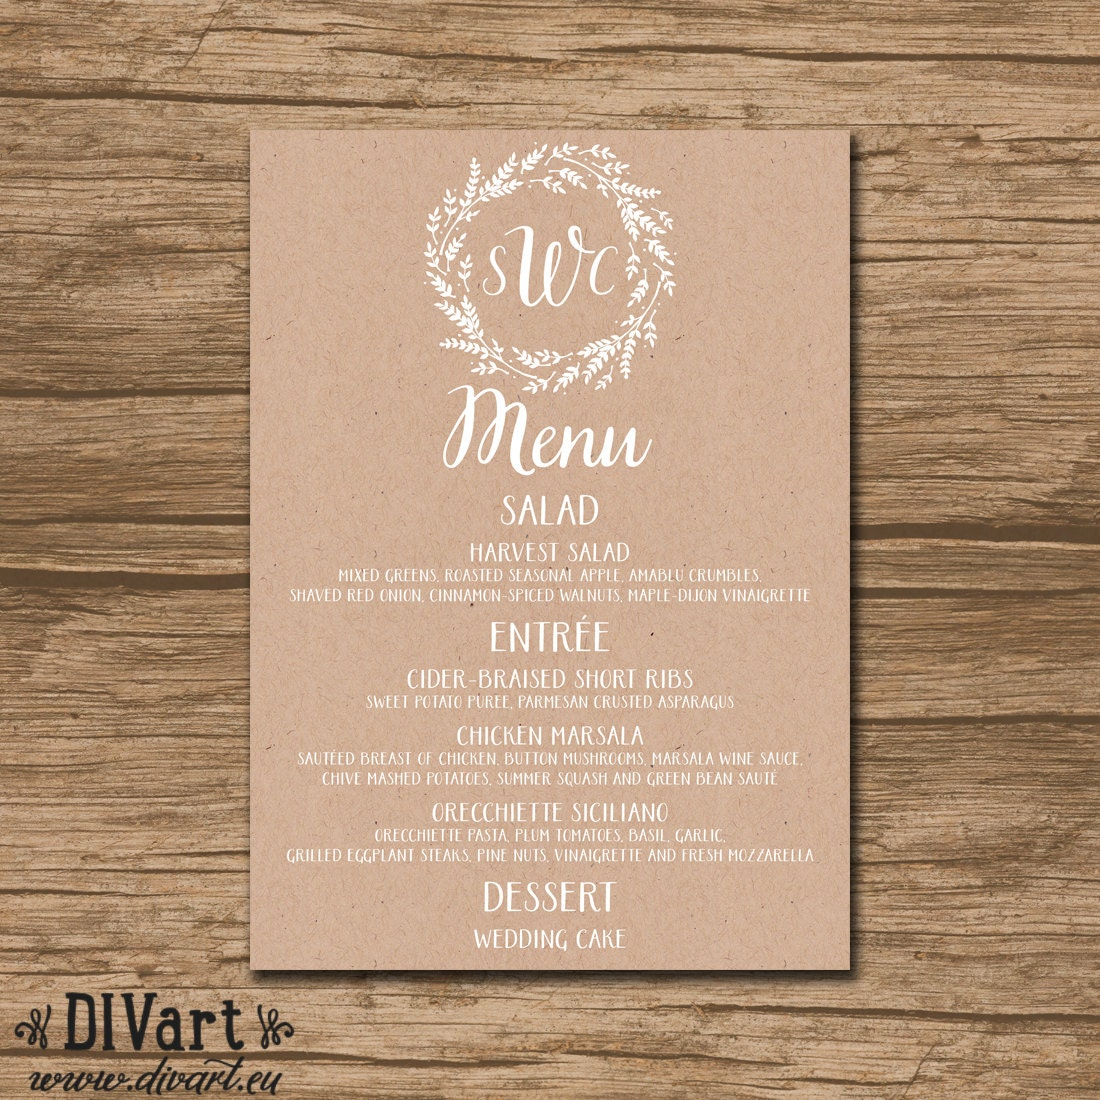 Printable Wedding Menu Rehearsal Dinner Menu Reception Menu: Rustic Wedding Menu Rehearsal Dinner Menu Bridal Shower